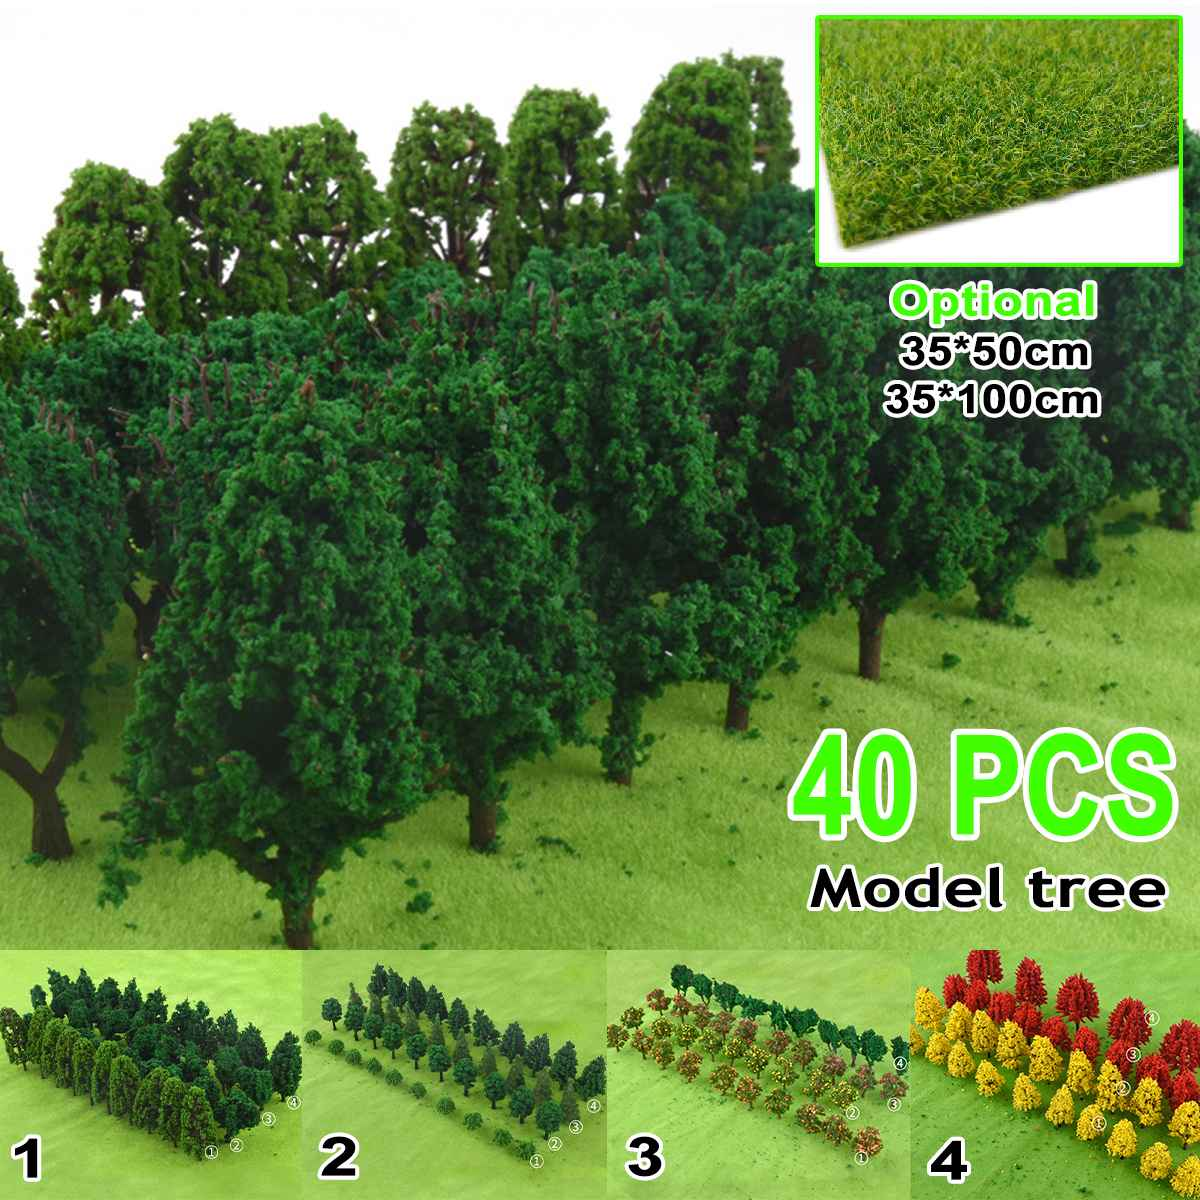 40Pcs DIY Scale Architectural Model Trees Railroad Layout Garden Landscape Scenery Miniatures Tree Building Kit Toy For Kid